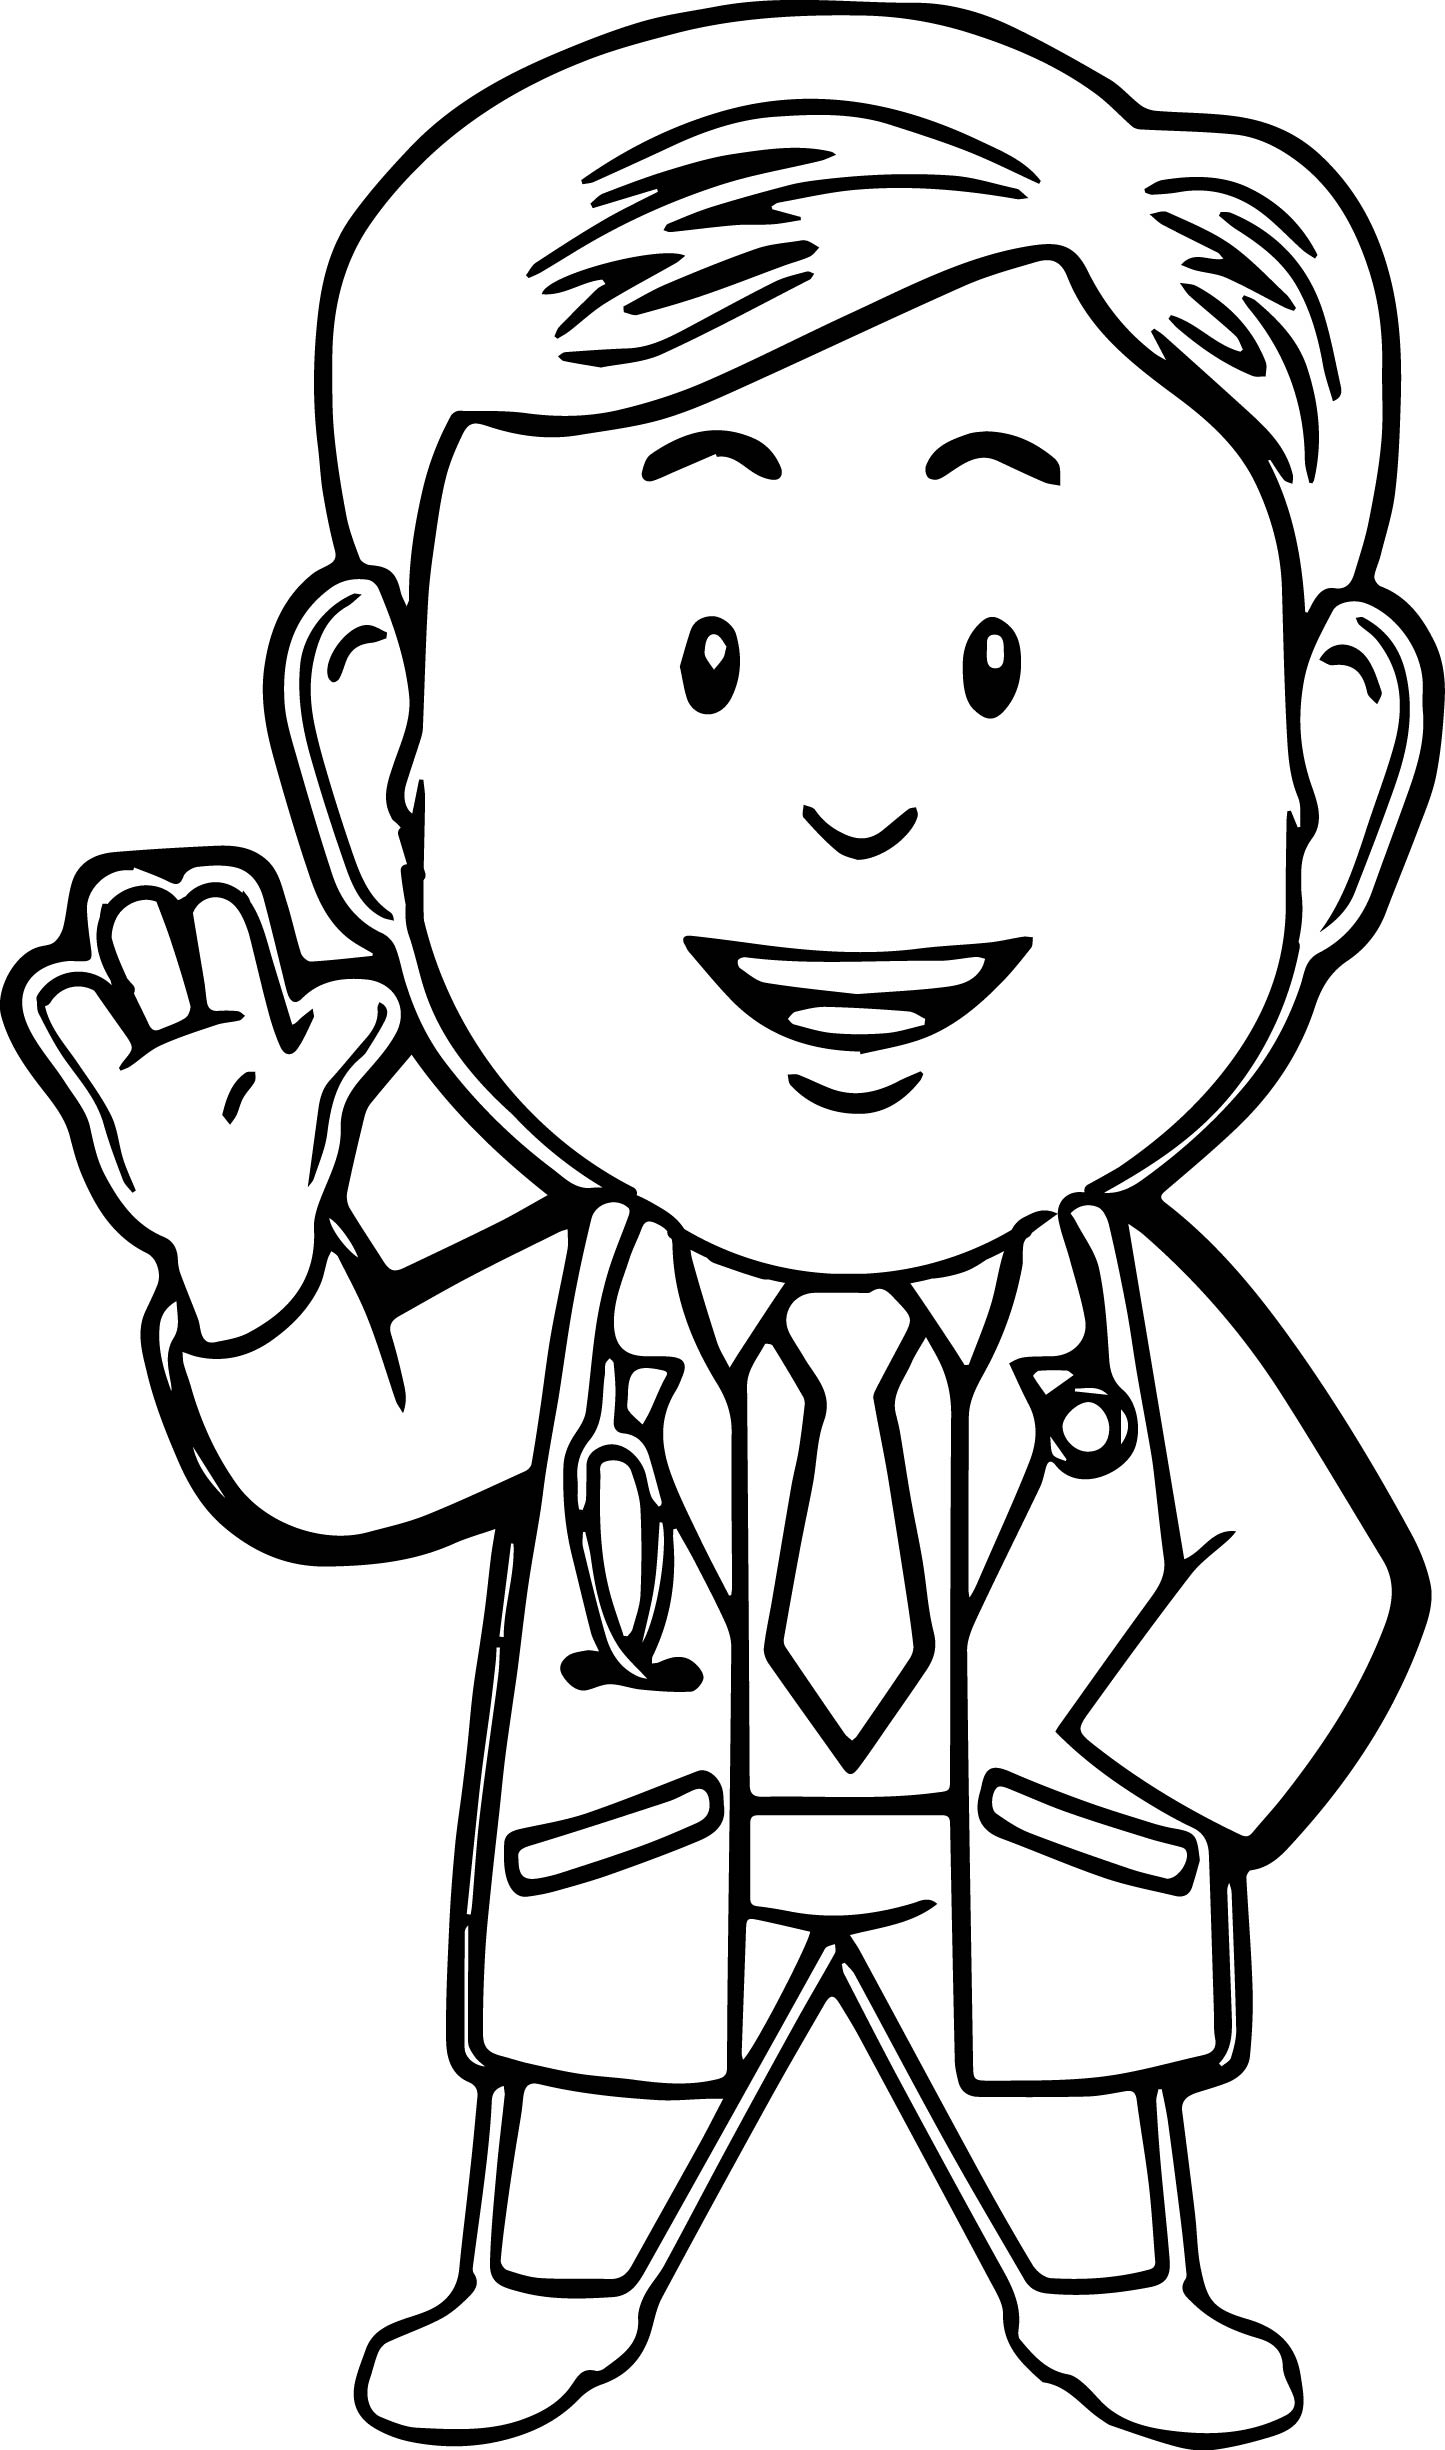 doctor coloring pages | wecoloringpage - Kitty Doctor Coloring Pages